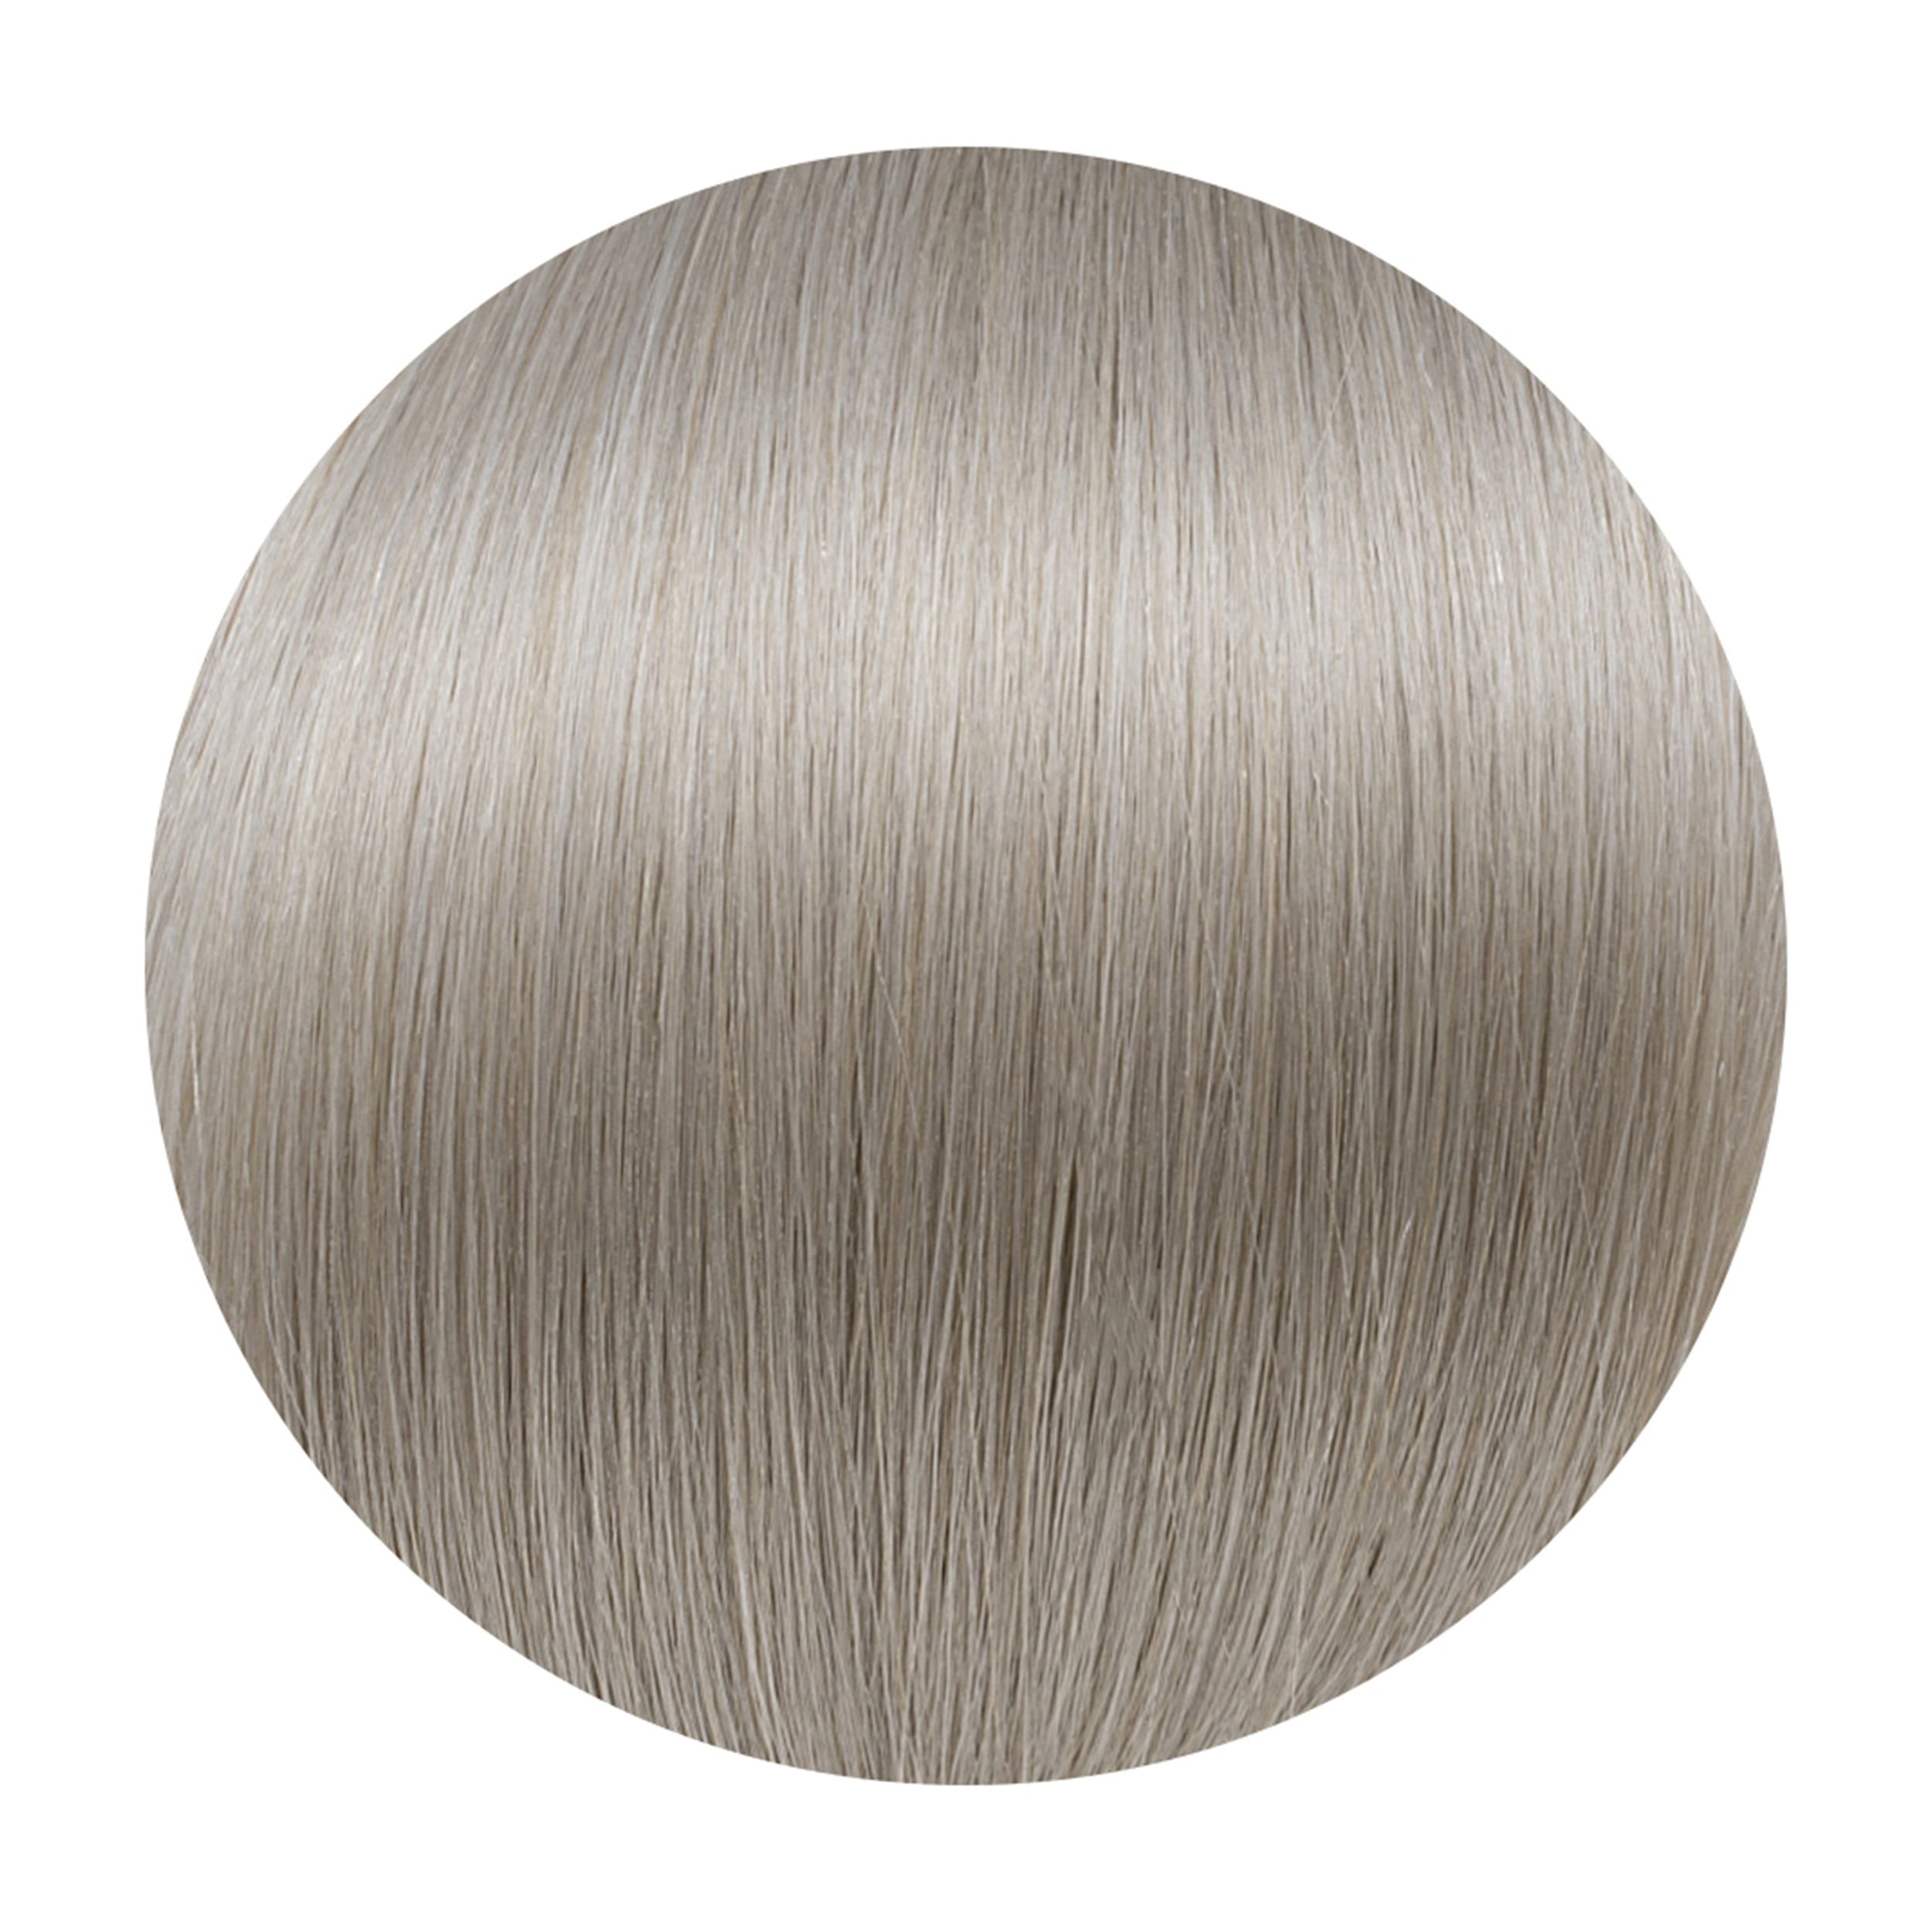 Mist Human Hair Extensions Clip in 5 Piec